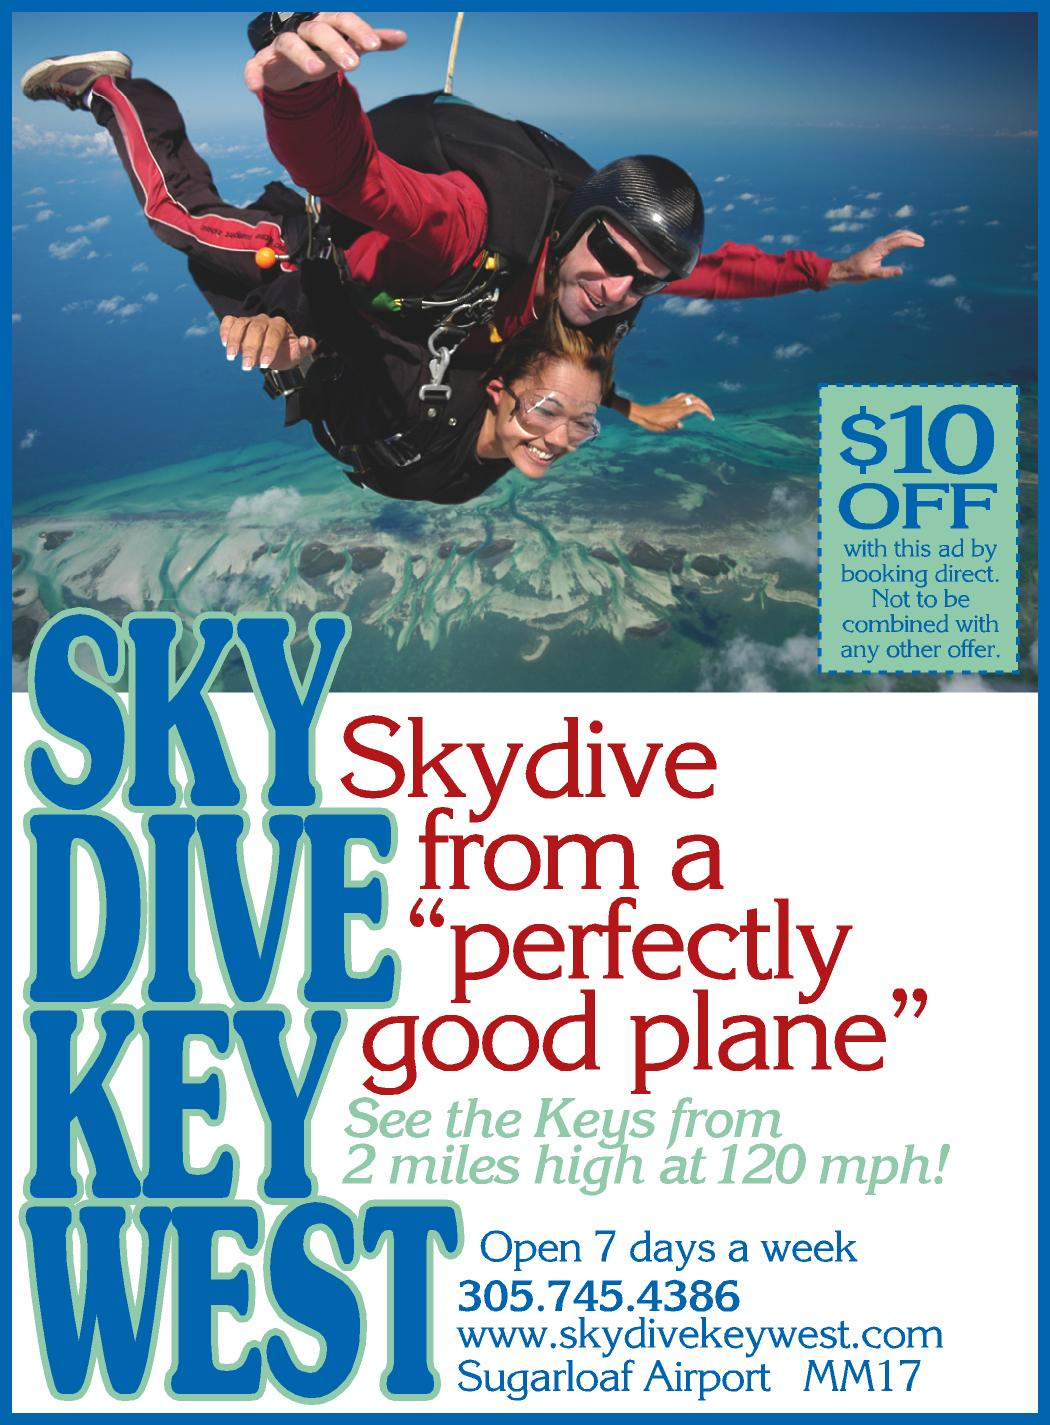 Skydive dubai discount coupons